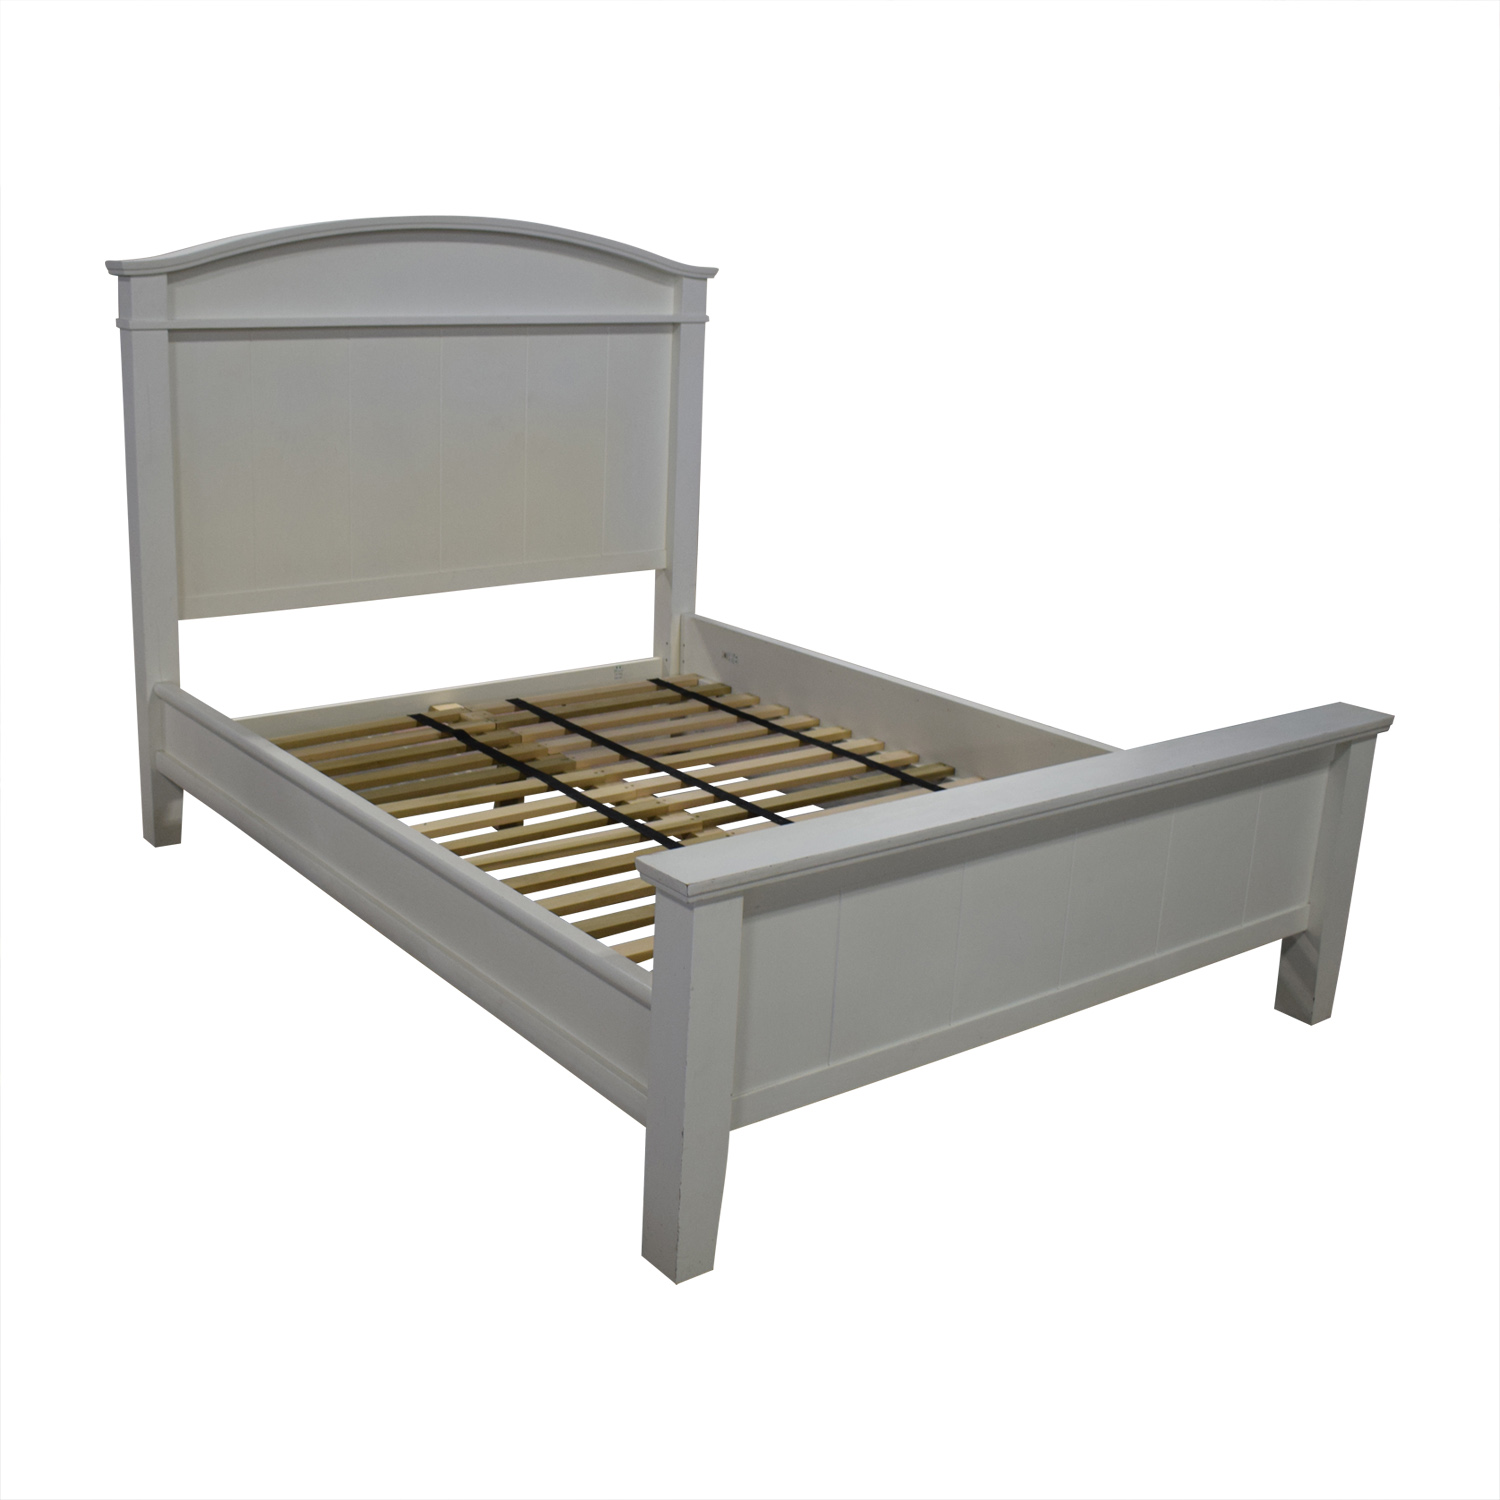 Pottery Barn Pottery Barn White Farmhouse Queen Platform Bed Frame Beds